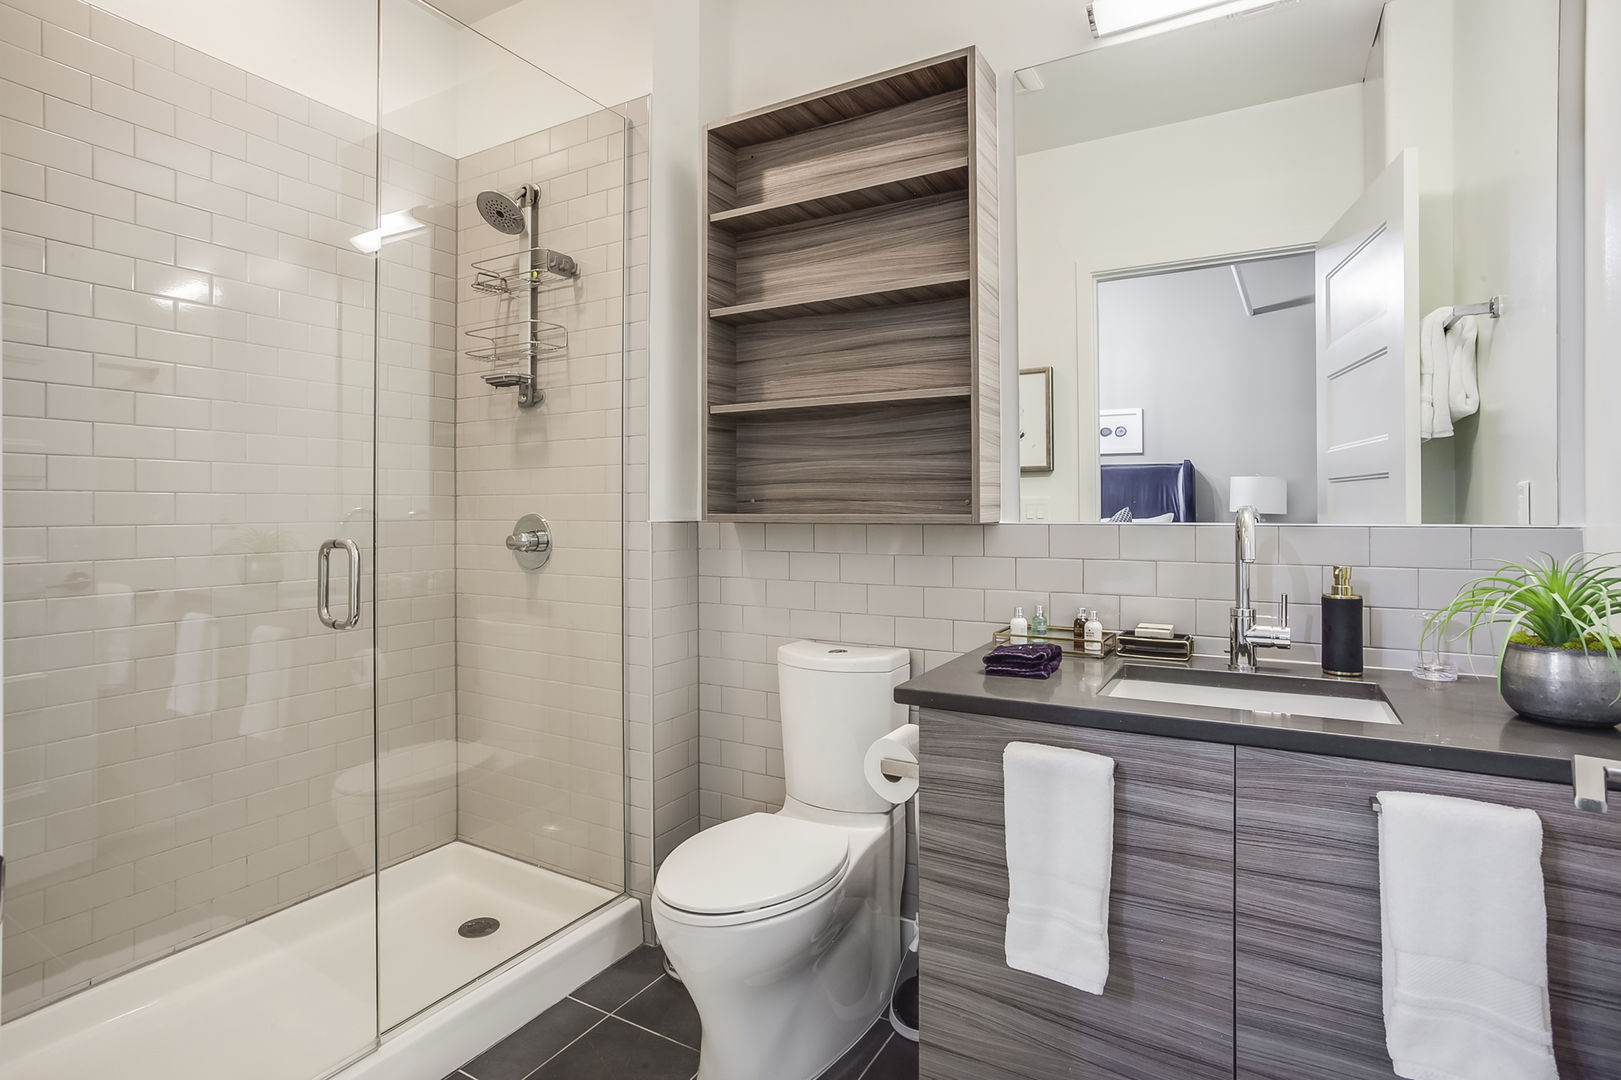 Master Bathroom Features a Walk-In Shower